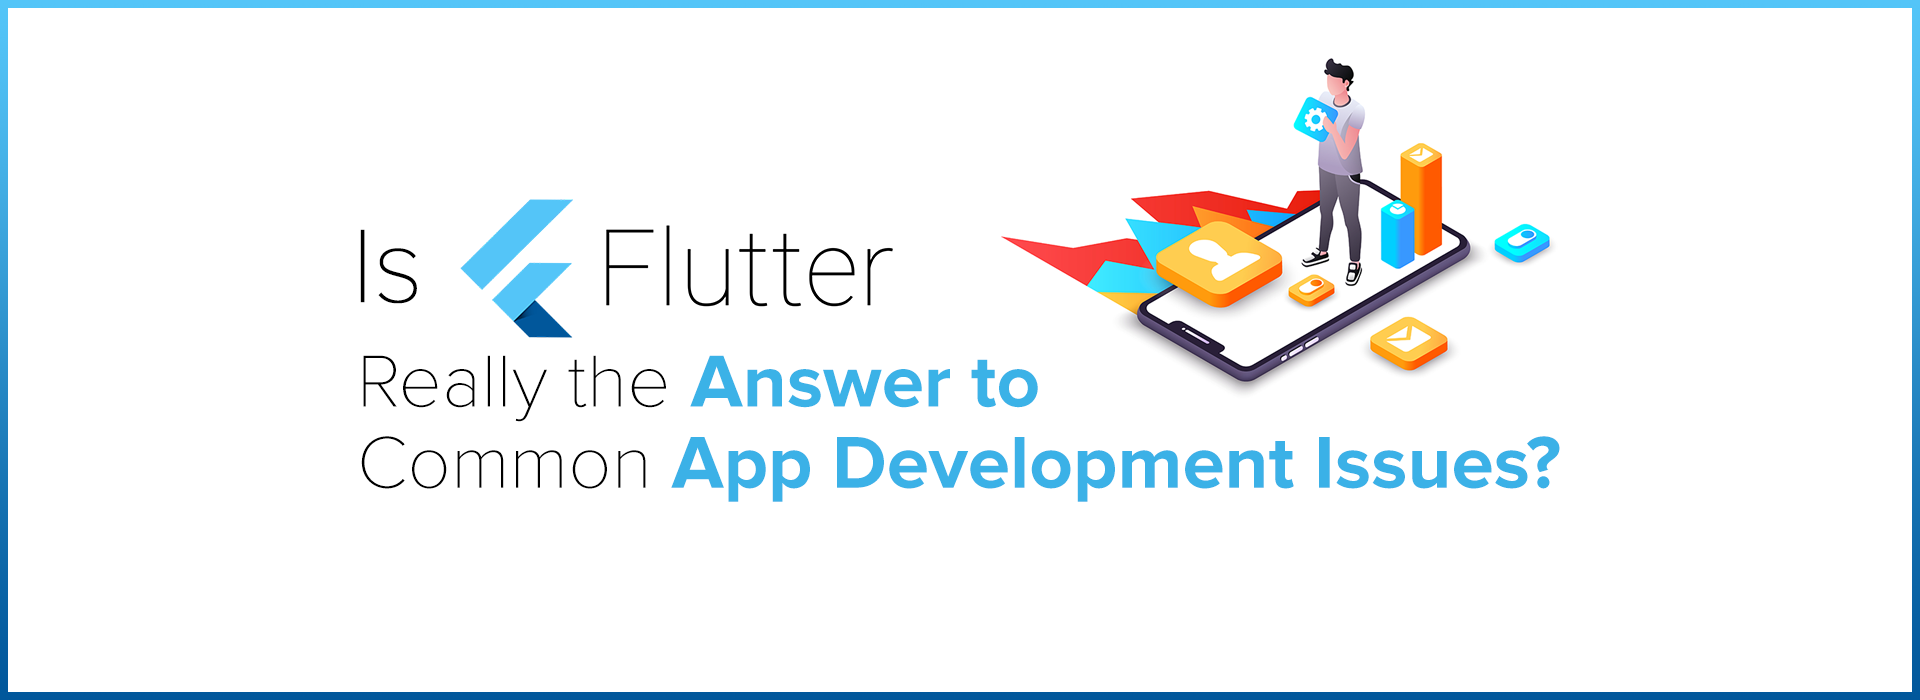 Is-Flutter-Really-the-Answer-to-Common-App-Development-Issues (1)